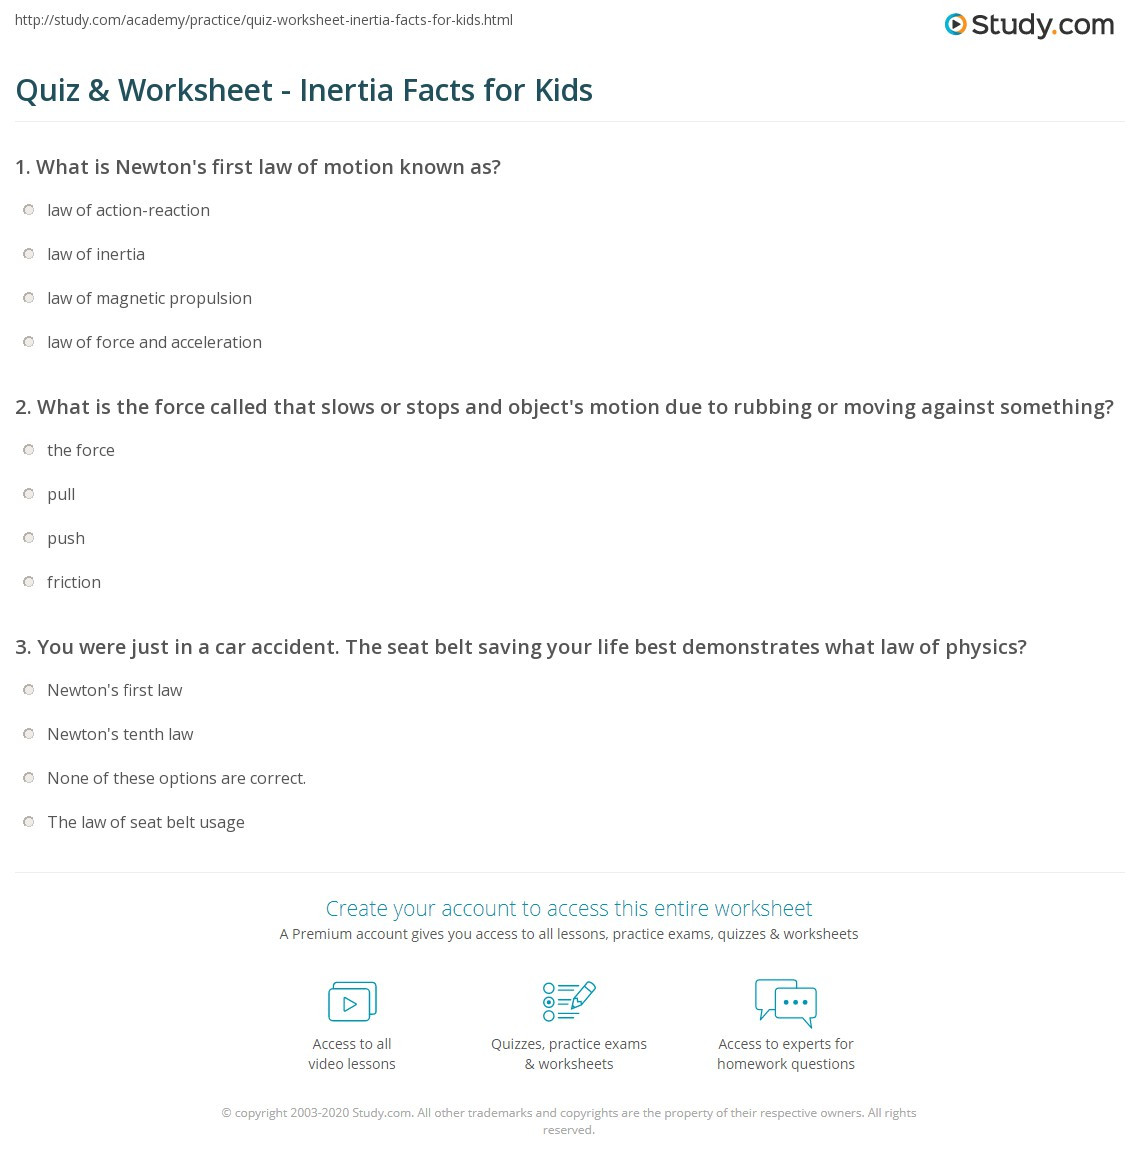 Inertia Worksheet Middle School Quiz & Worksheet Inertia Facts for Kids